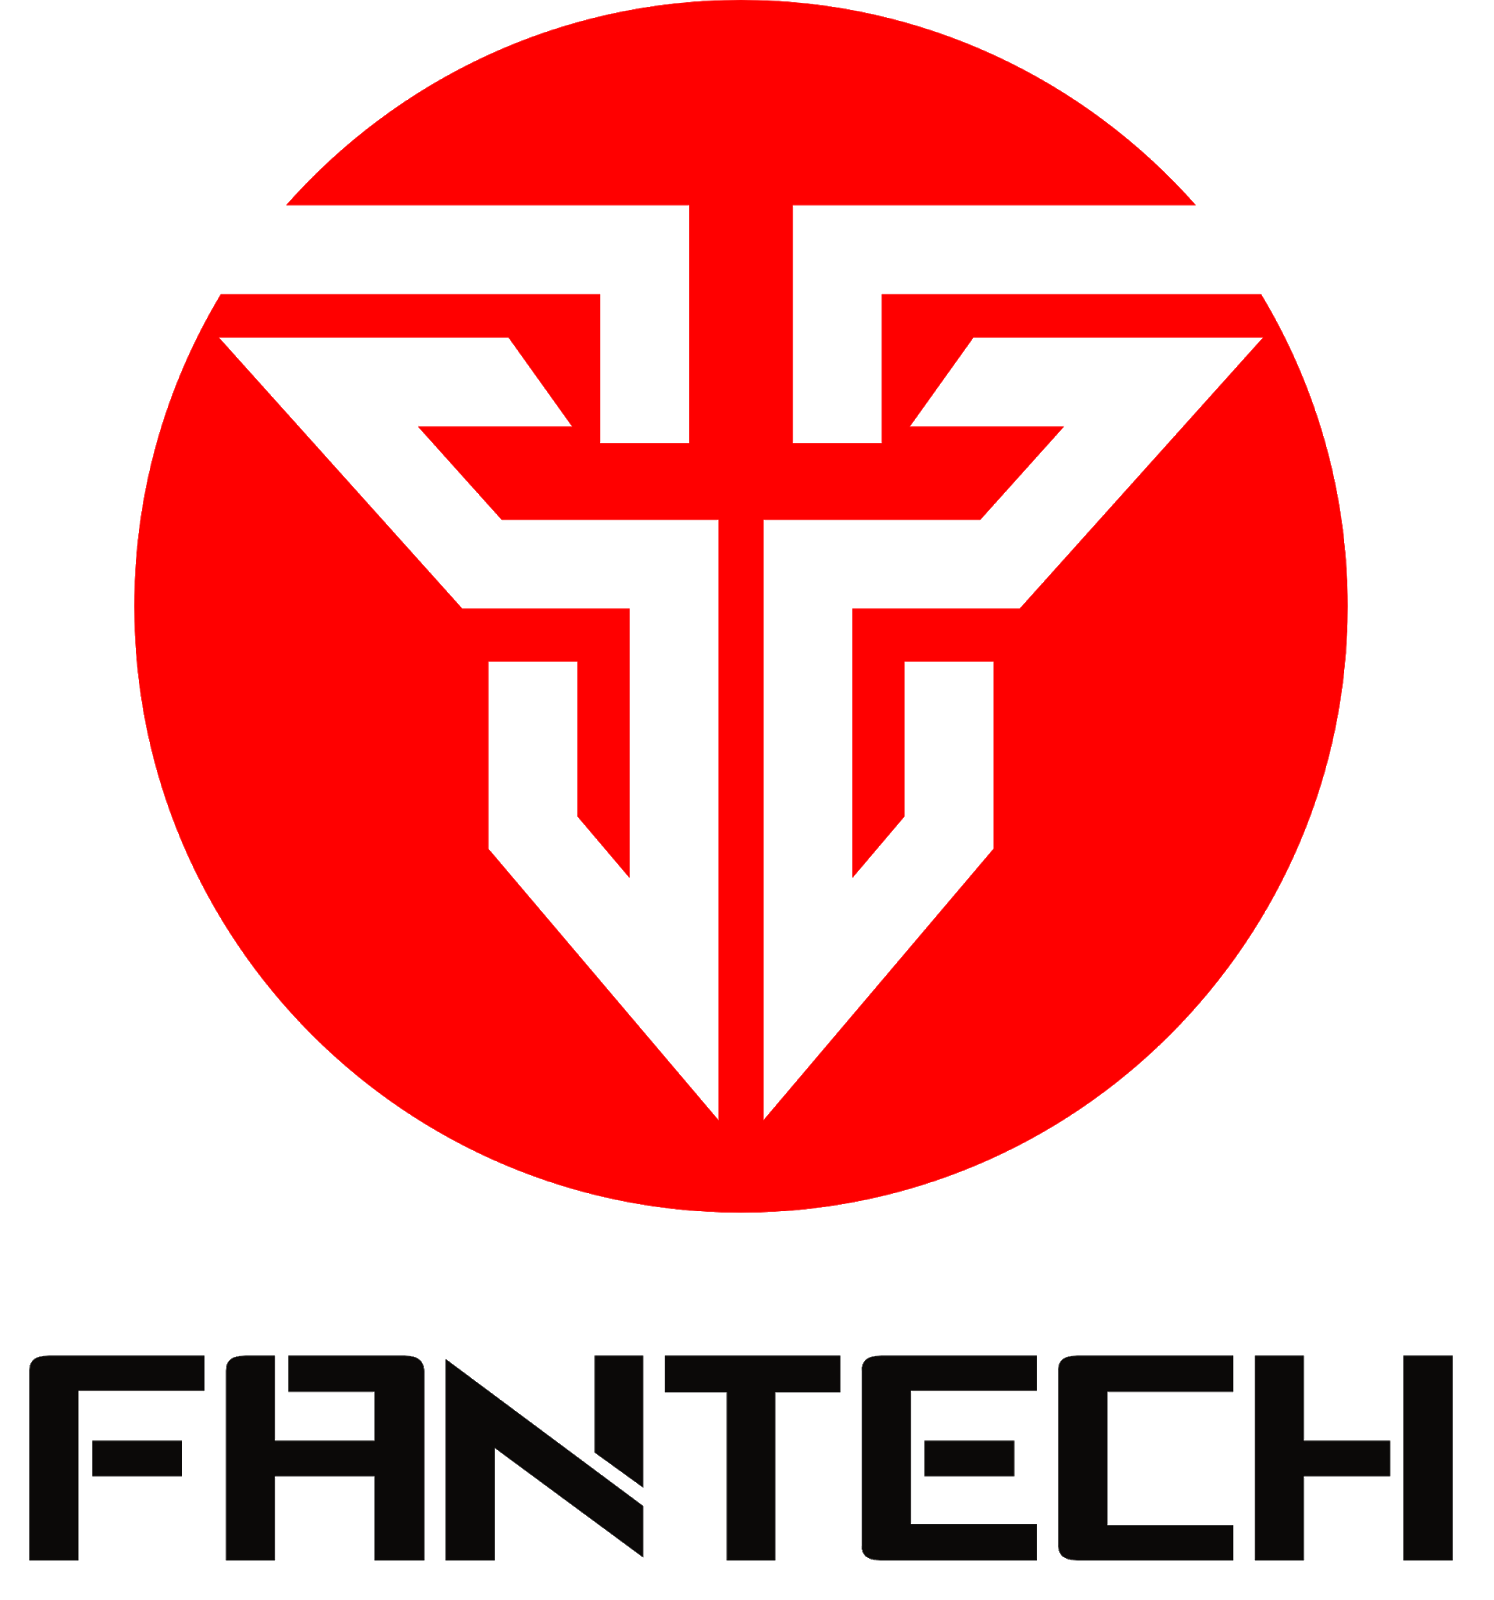 da2687e94da As a form of our support for the progress of national E-Sport, in 2016 we  introduced a new FANTECH® LOGO specifically for Gaming products along with  the ...